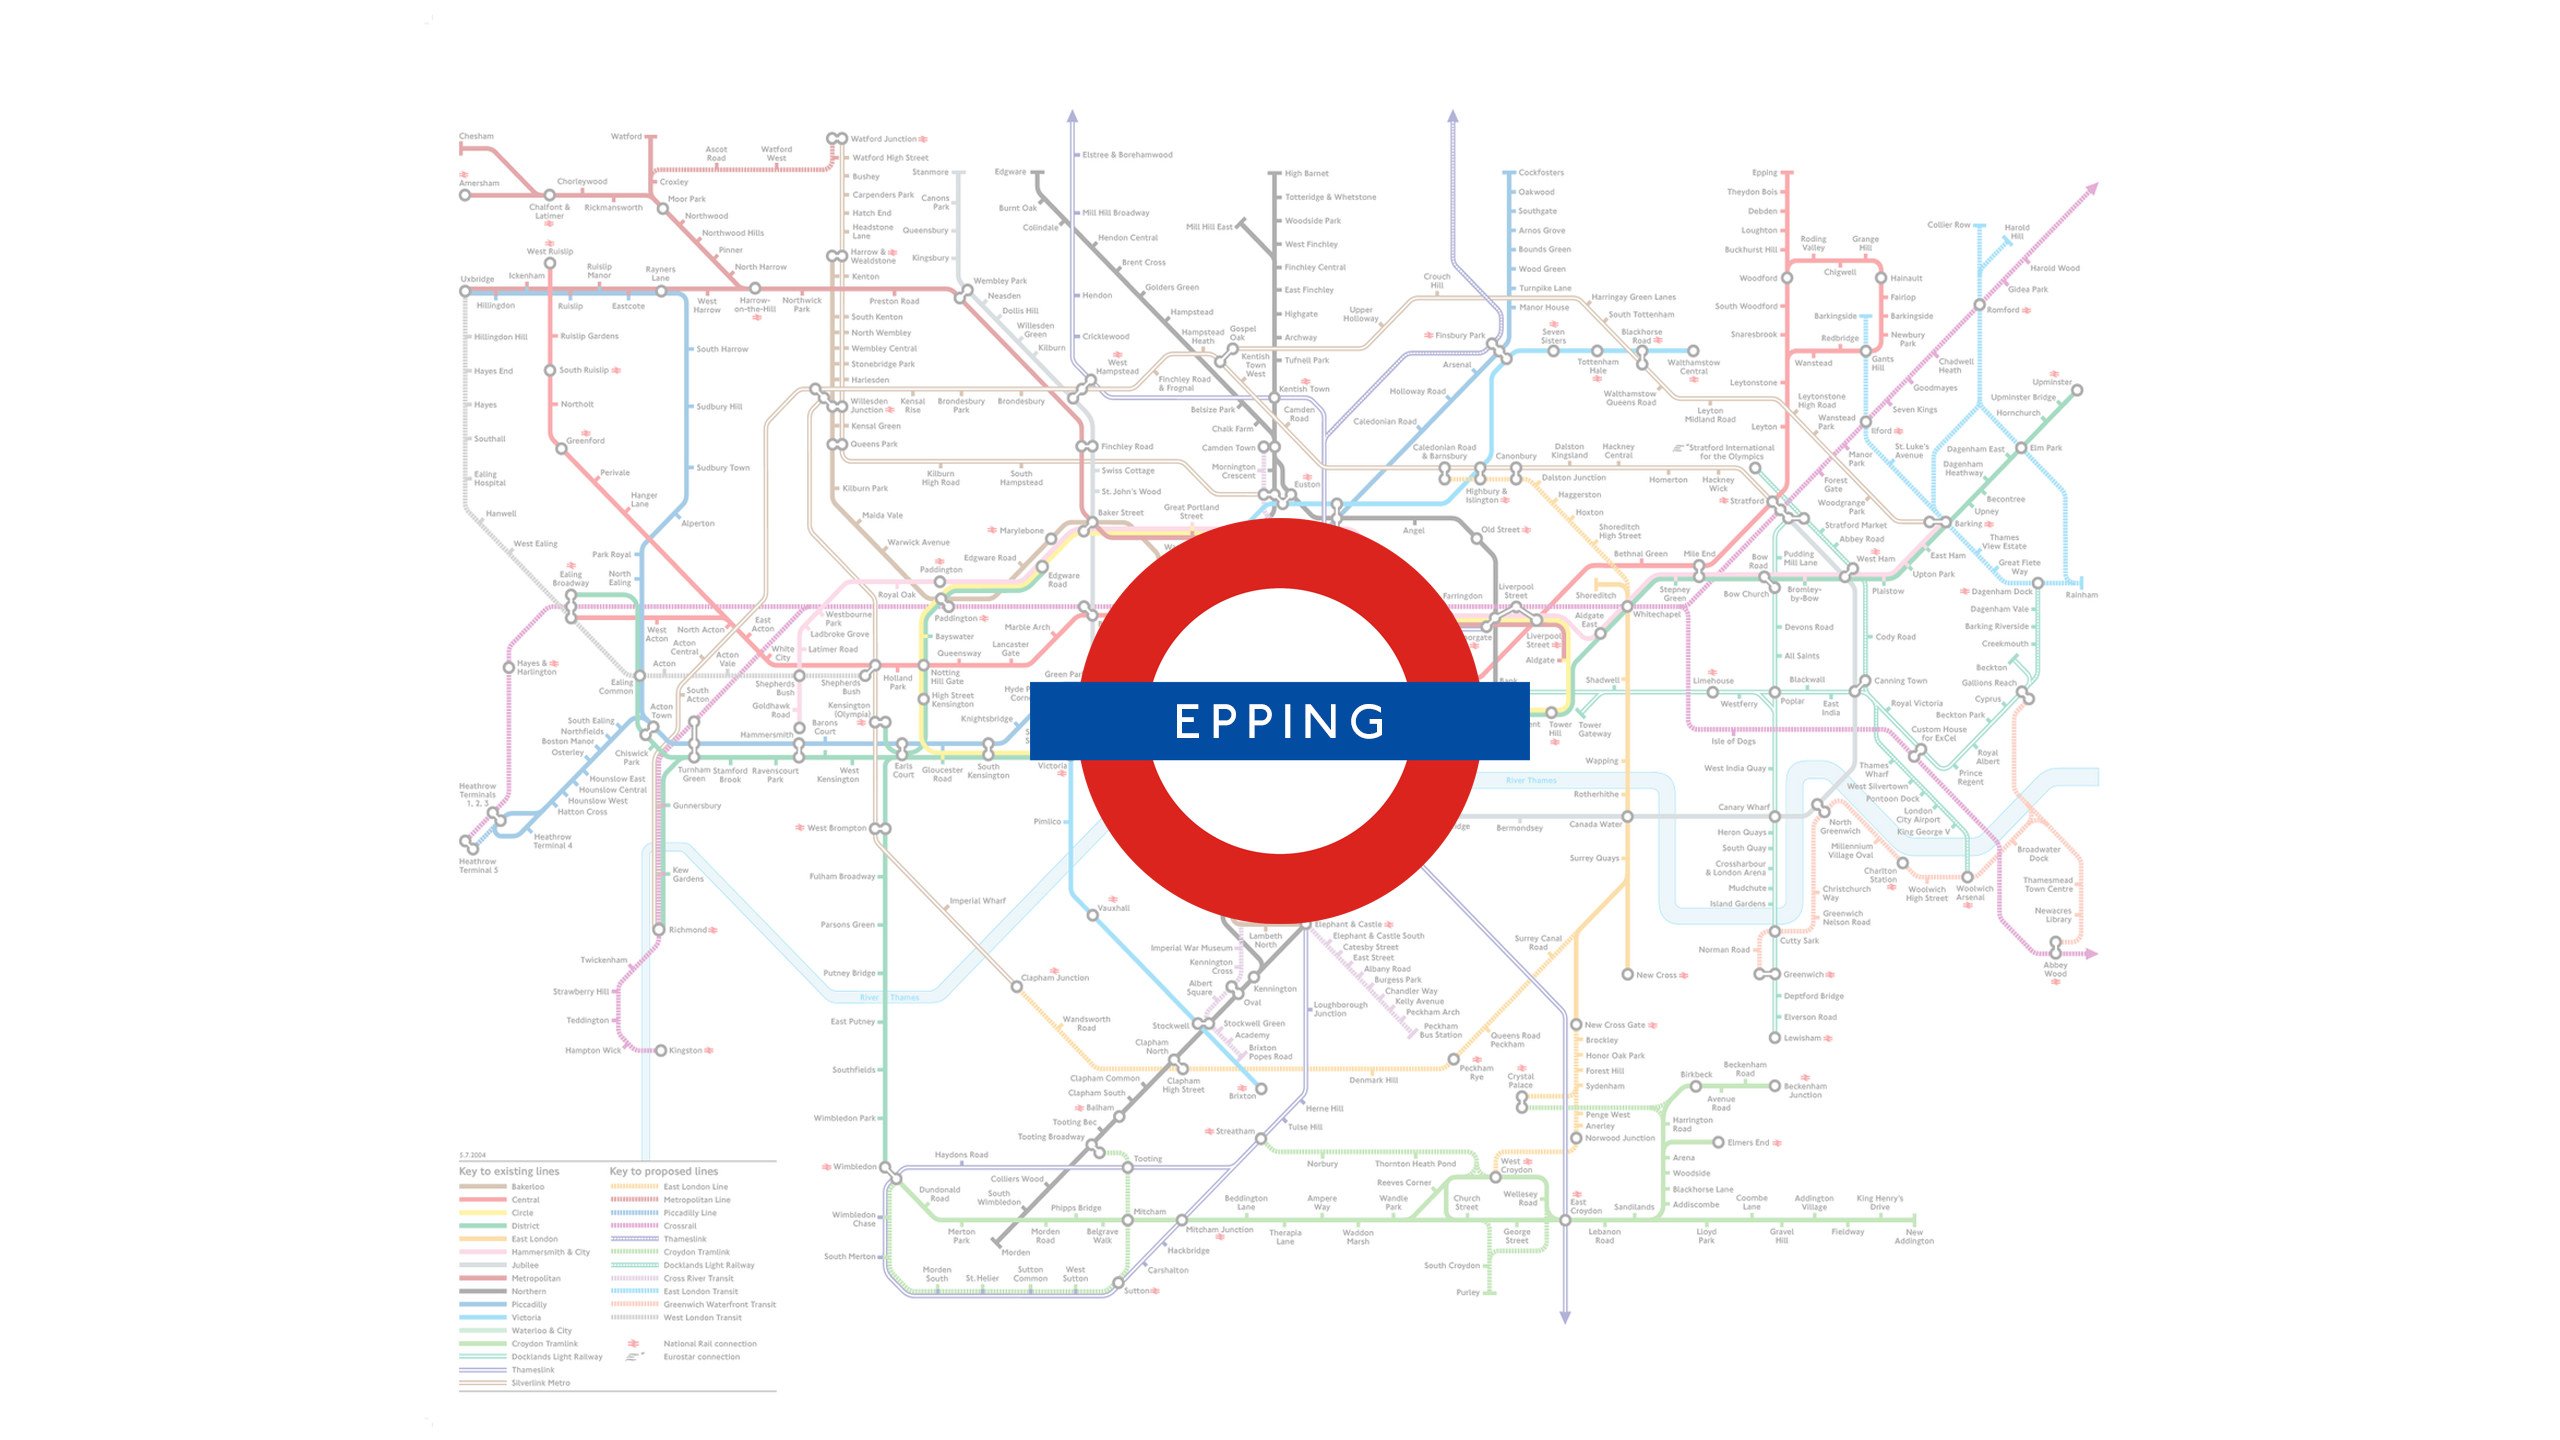 Epping (Map)